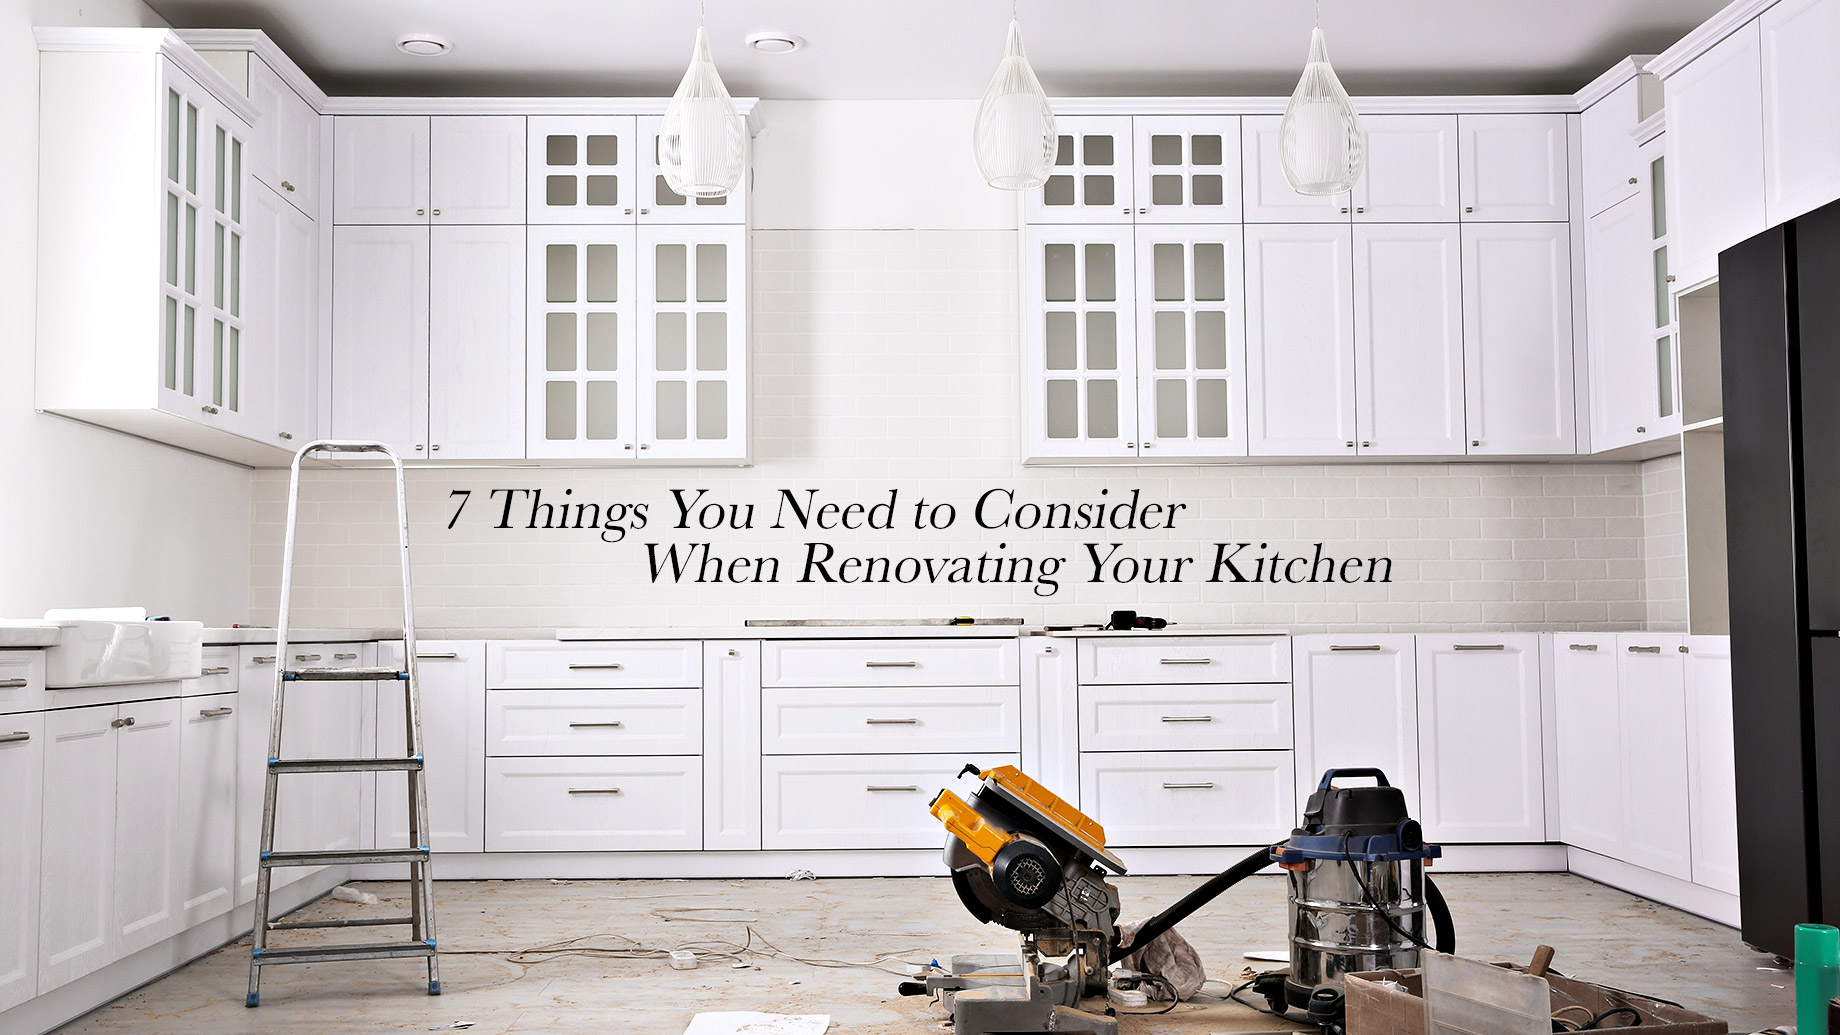 7 Things You Need to Consider When Renovating Your Kitchen